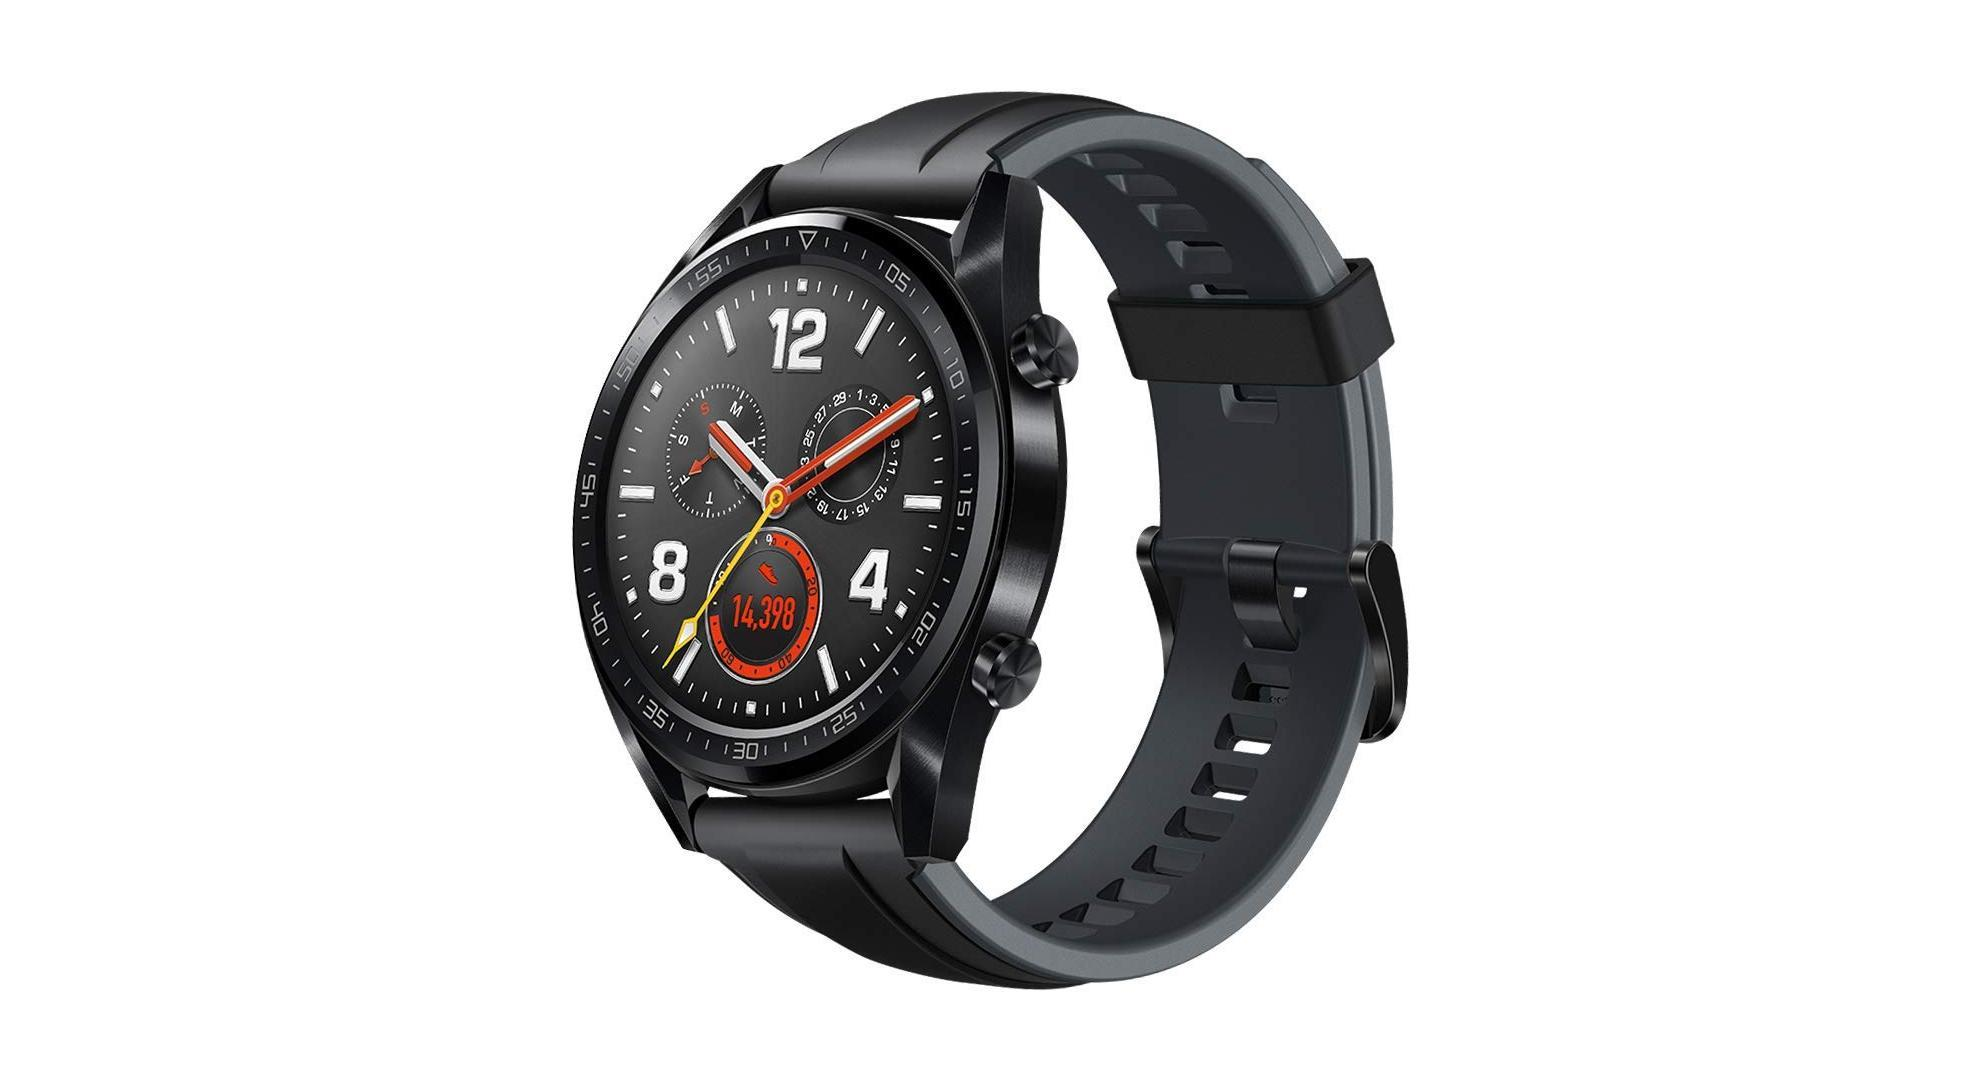 🔥 Bon plan : la montre connectée Huawei Watch GT passe à 169 euros